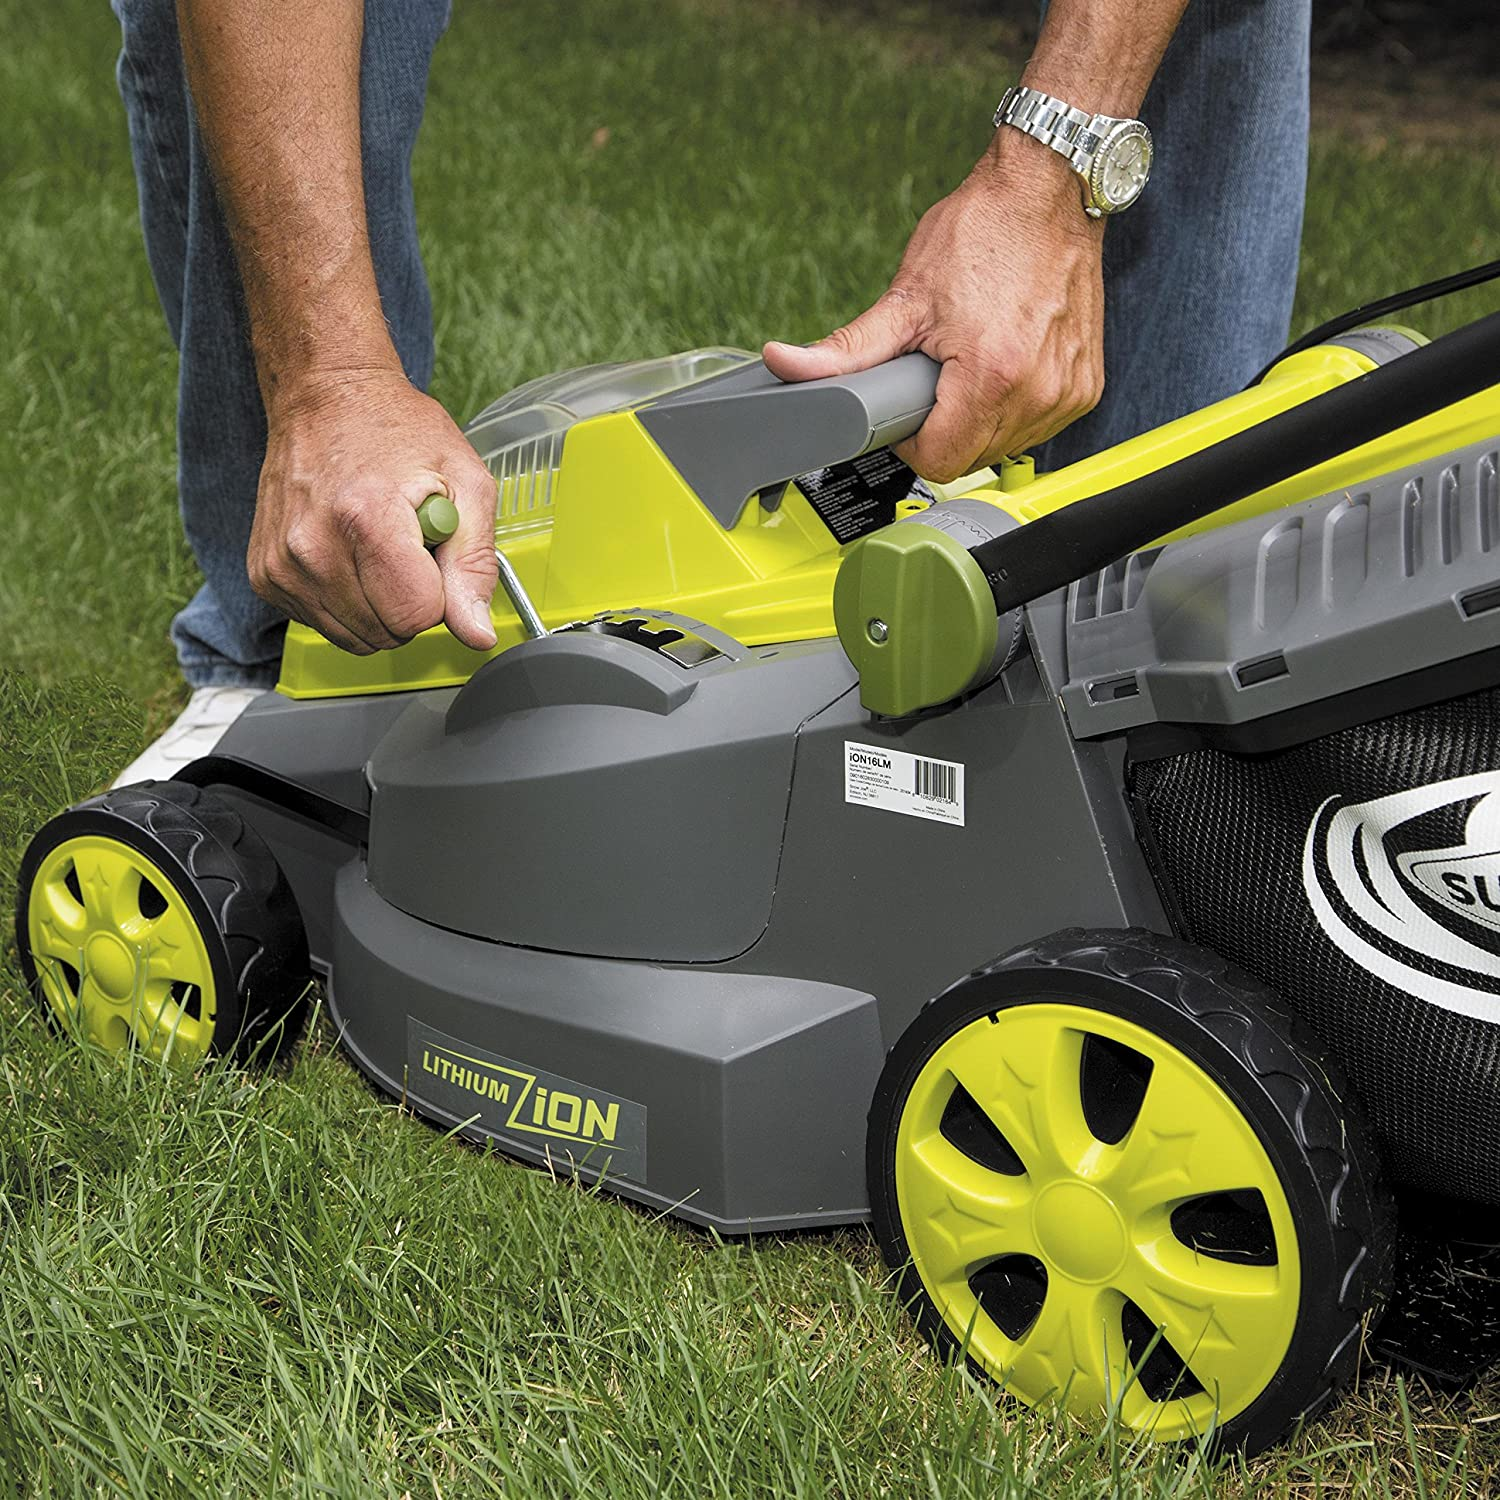 Sun Joe iON16LM 40-Volt 4.0-Amp 16-Inch Brushless Cordless Lawn Mower